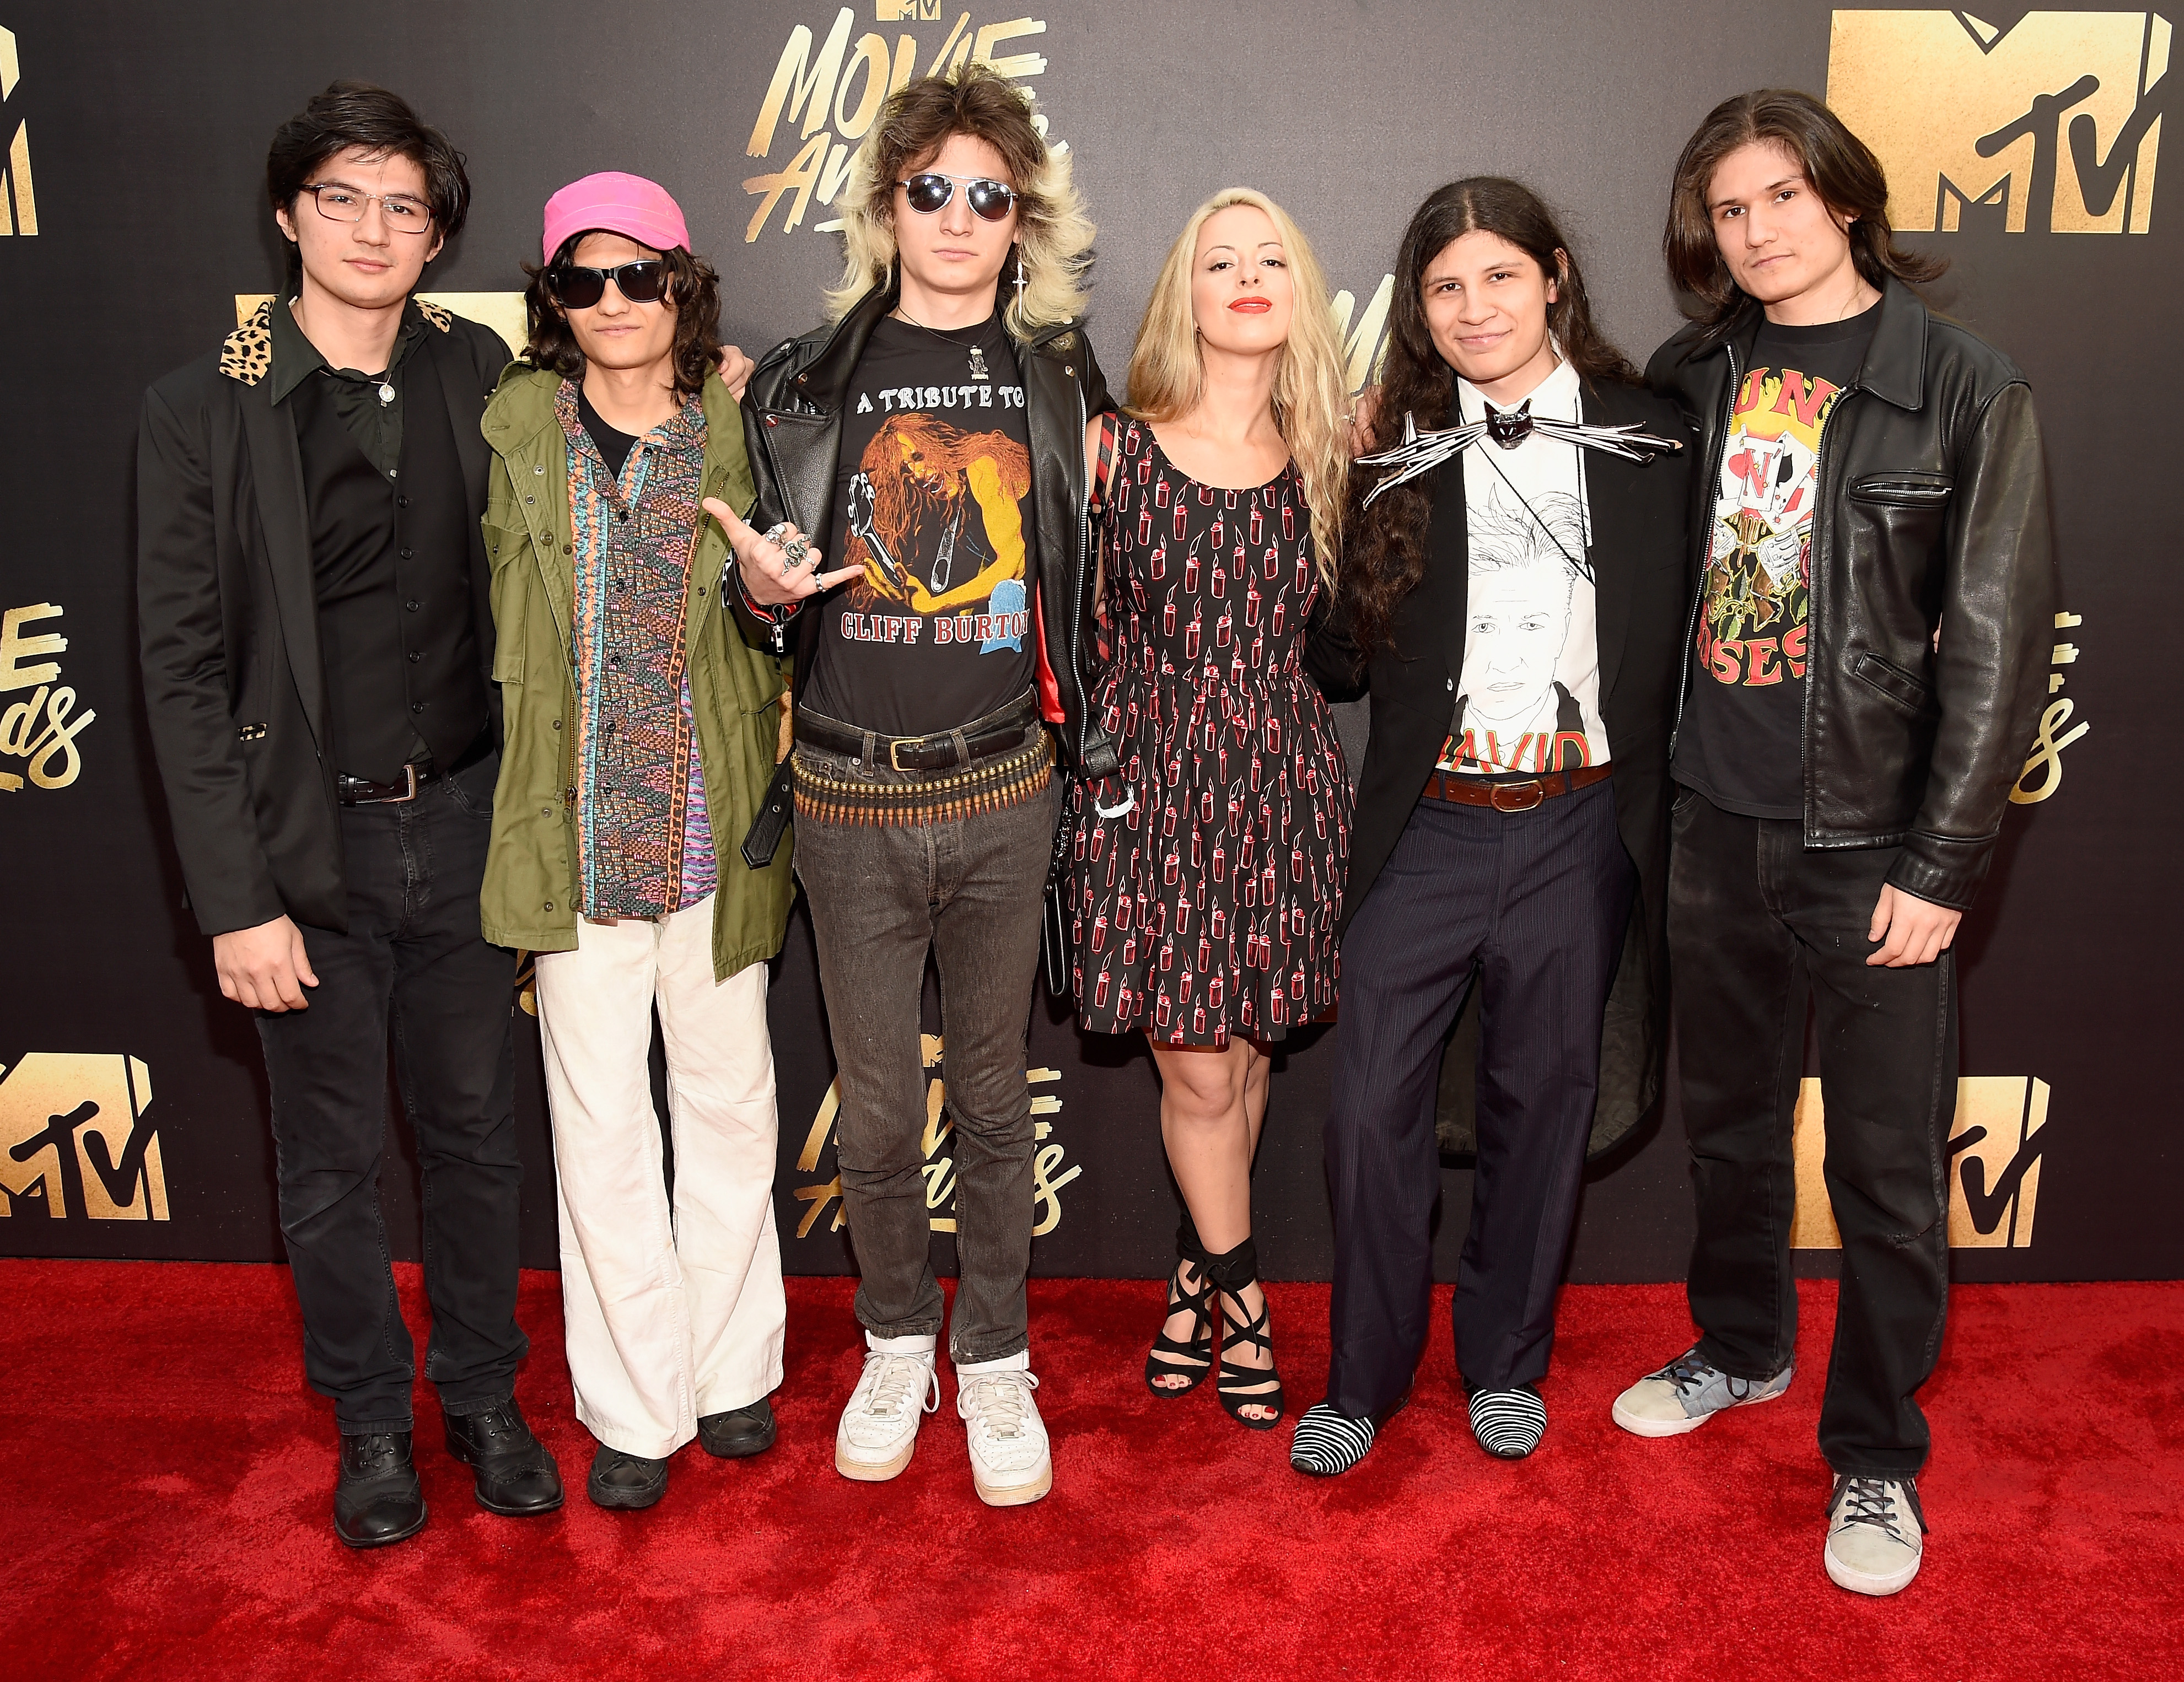 Director Crystal Moselle and  The Wolfpack  Angulo Brothers attend the 2016 MTV Movie Awards at Warner Bros. Studios on April 9, 2016 in Burbank, Calif.